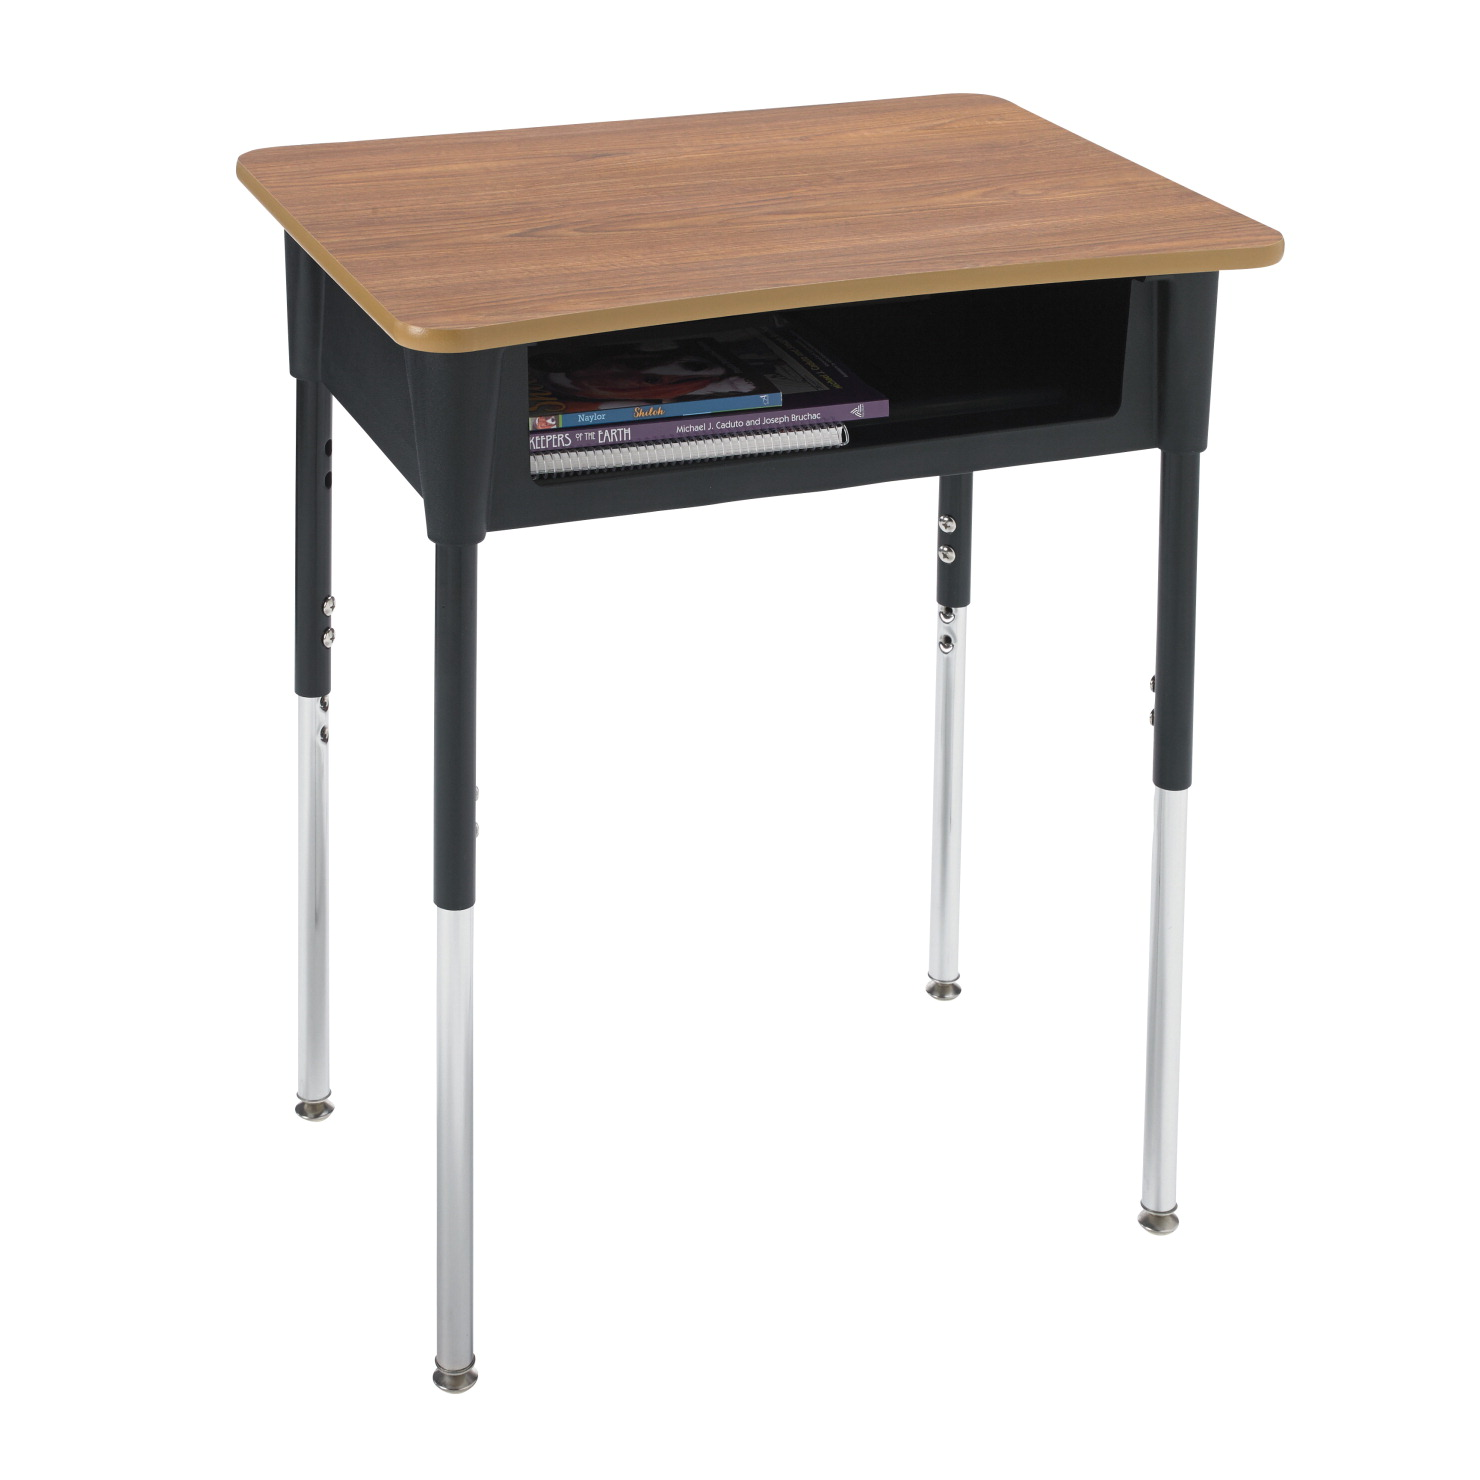 Classroom Select Contemporary A+ Open Front Desk, 20 x 26 Inch Laminate Top, Various Options